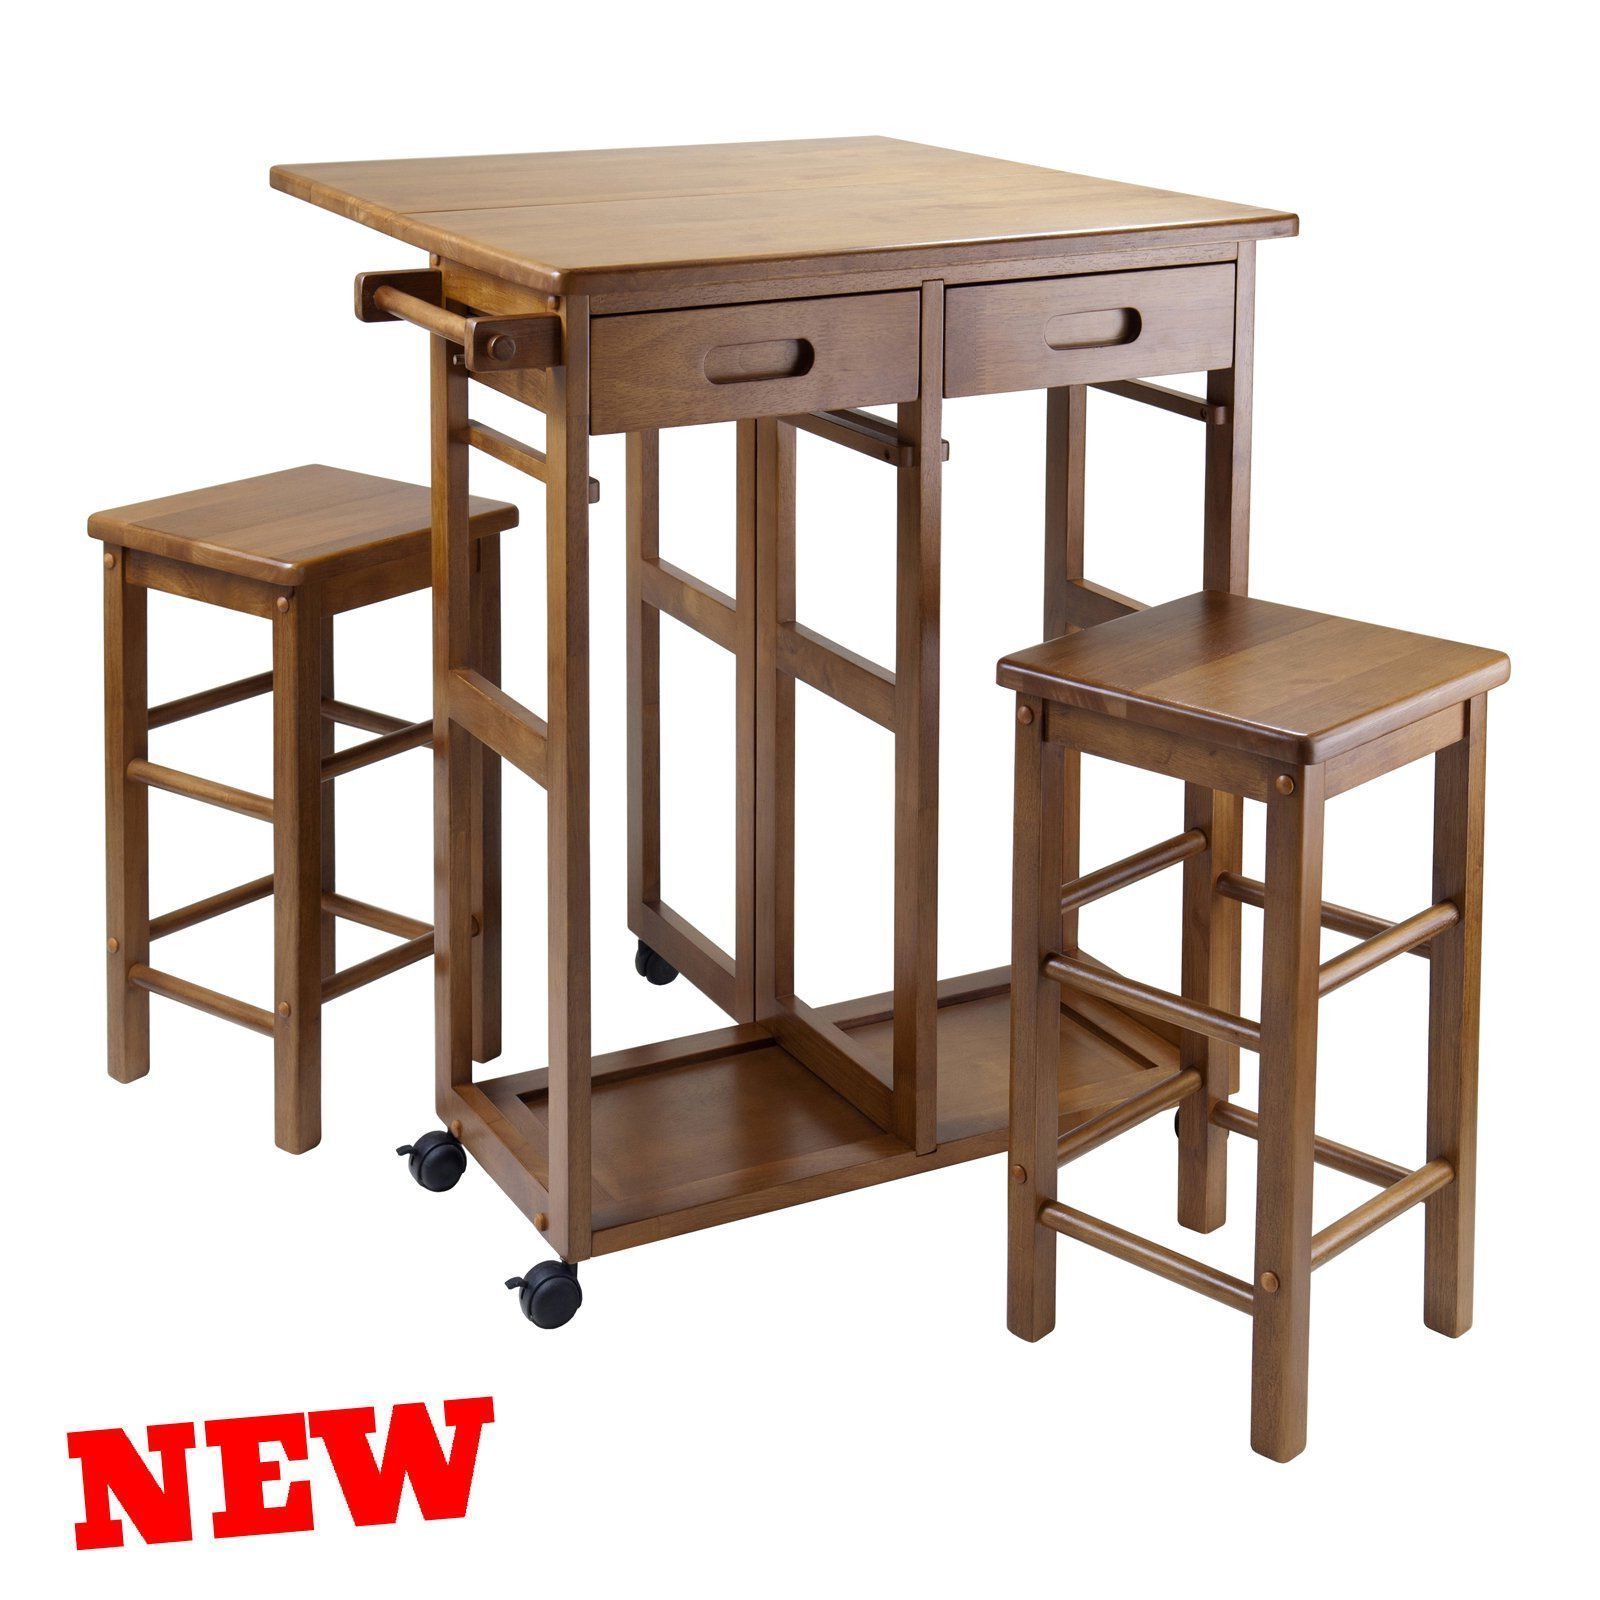 Kitchen Island Tables With Stools: Small Kitchen Island Table Stools Set Space Saver Drop